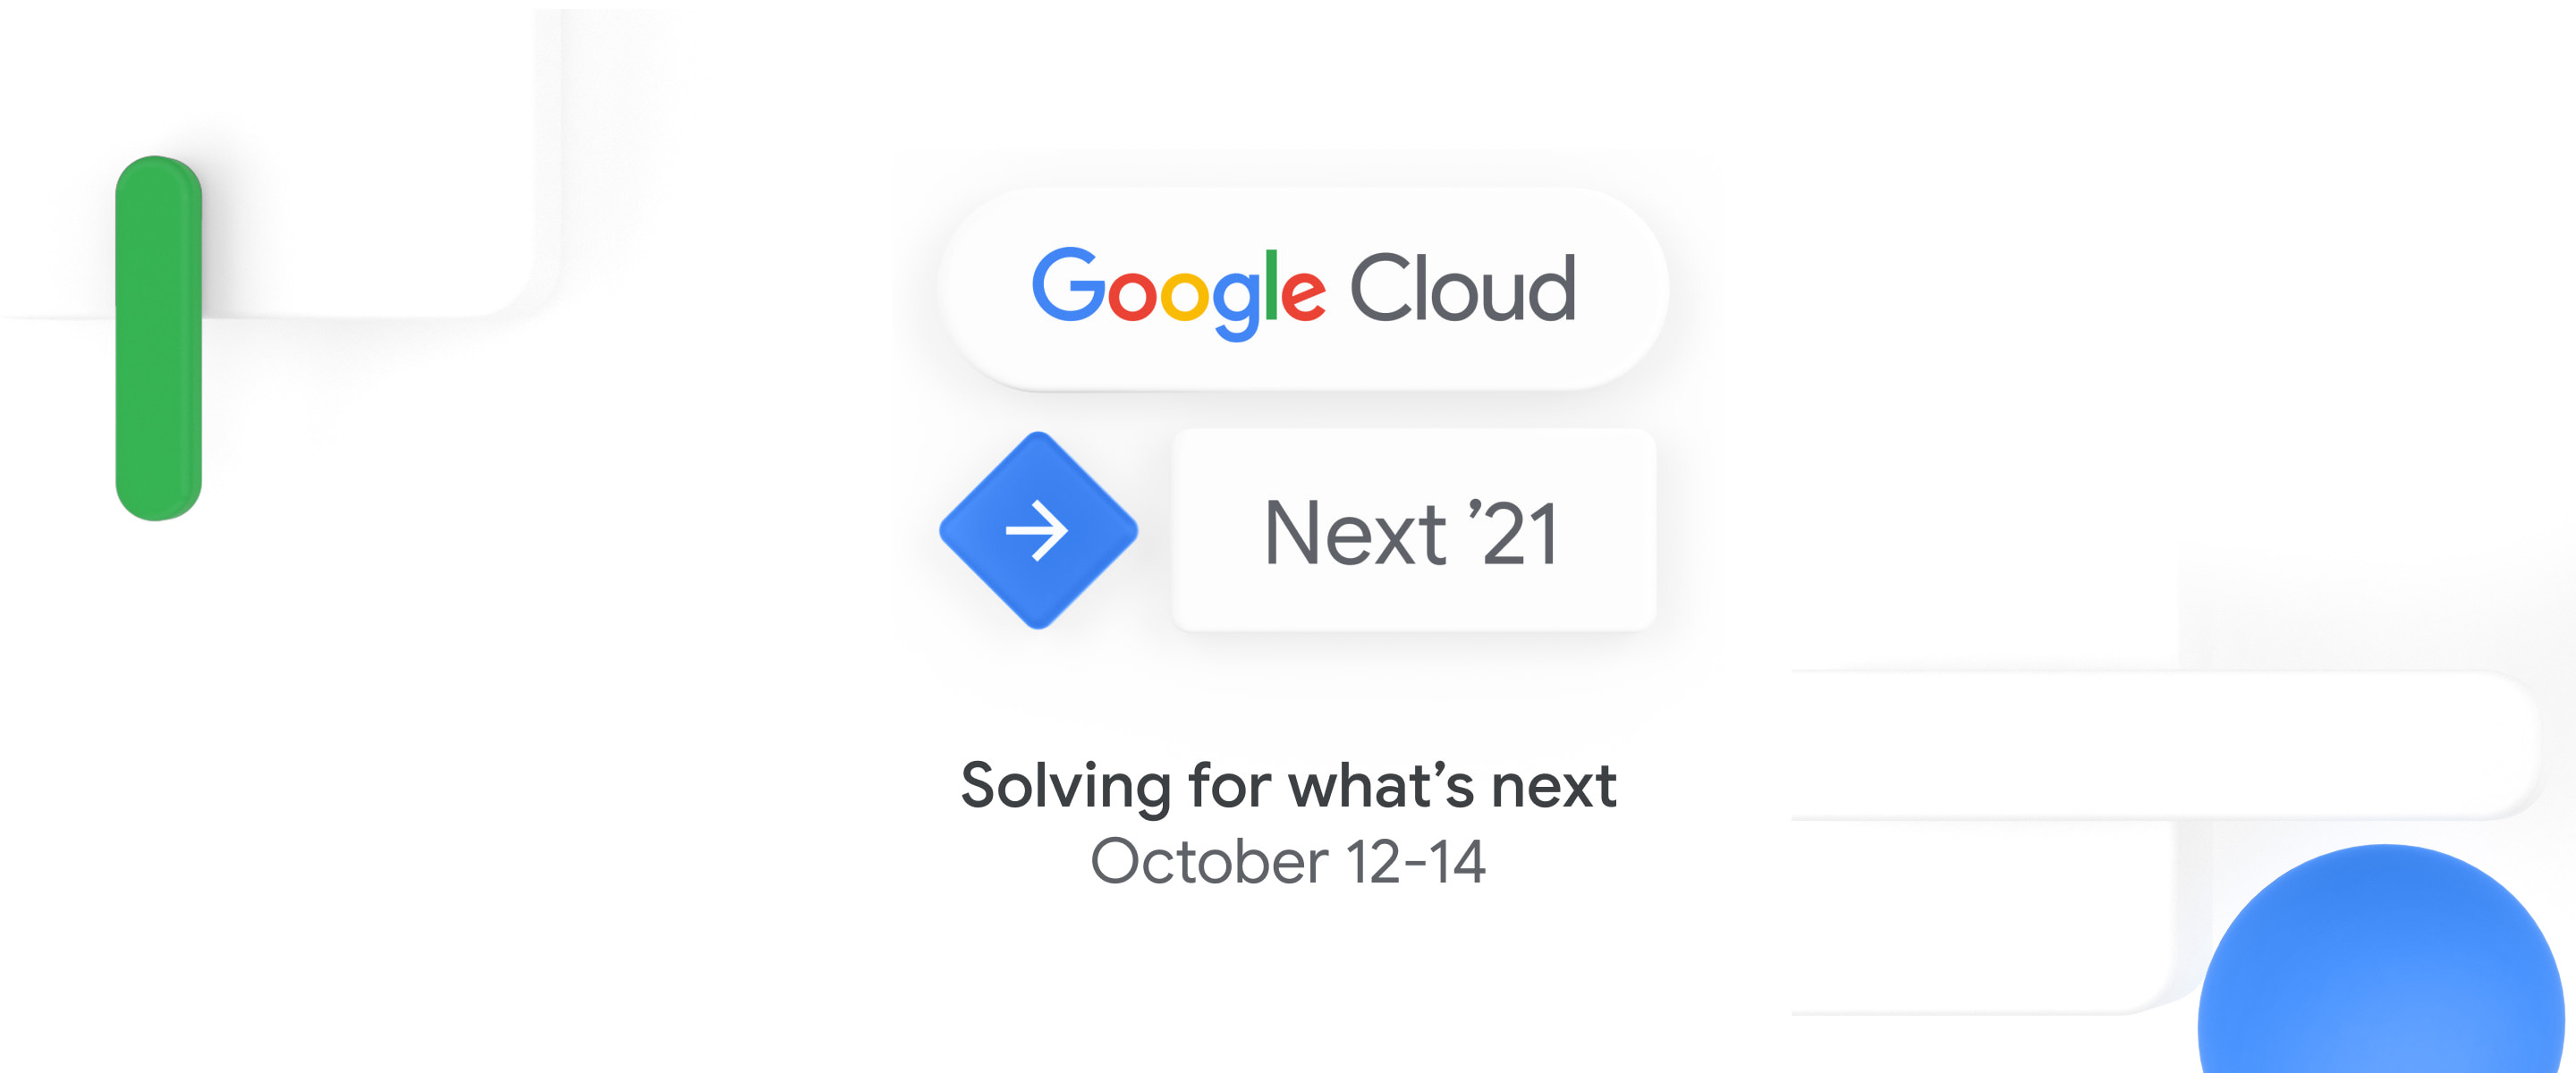 Google Cloud expands CCAI and DocAI solutions to accelerate time to value